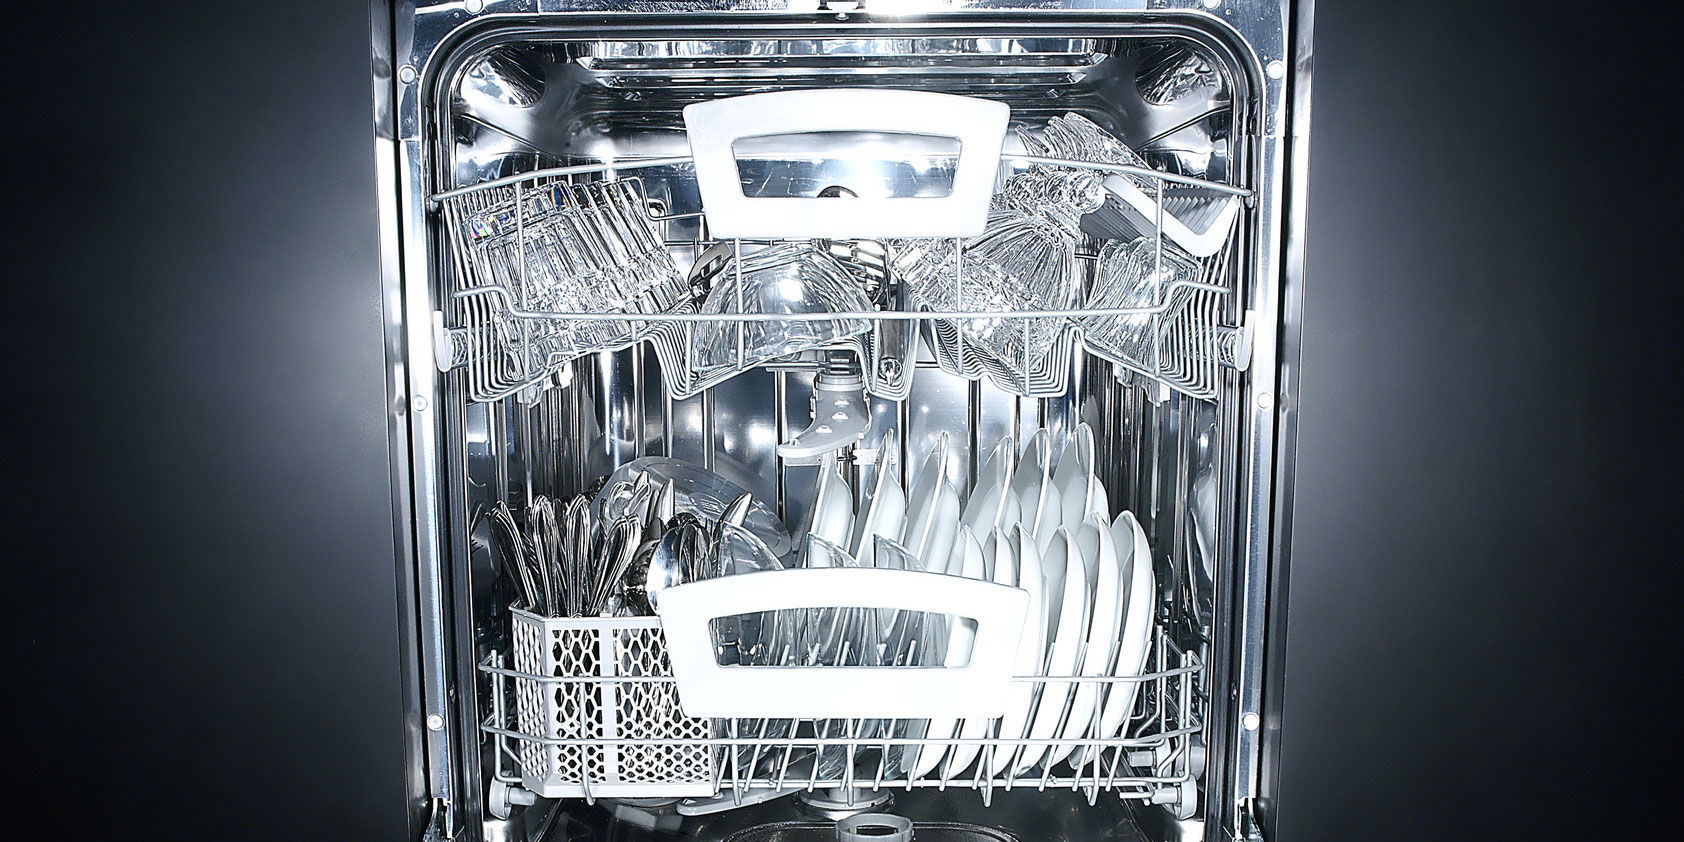 How Does A Dishwasher Work Reviewed Dishwashers